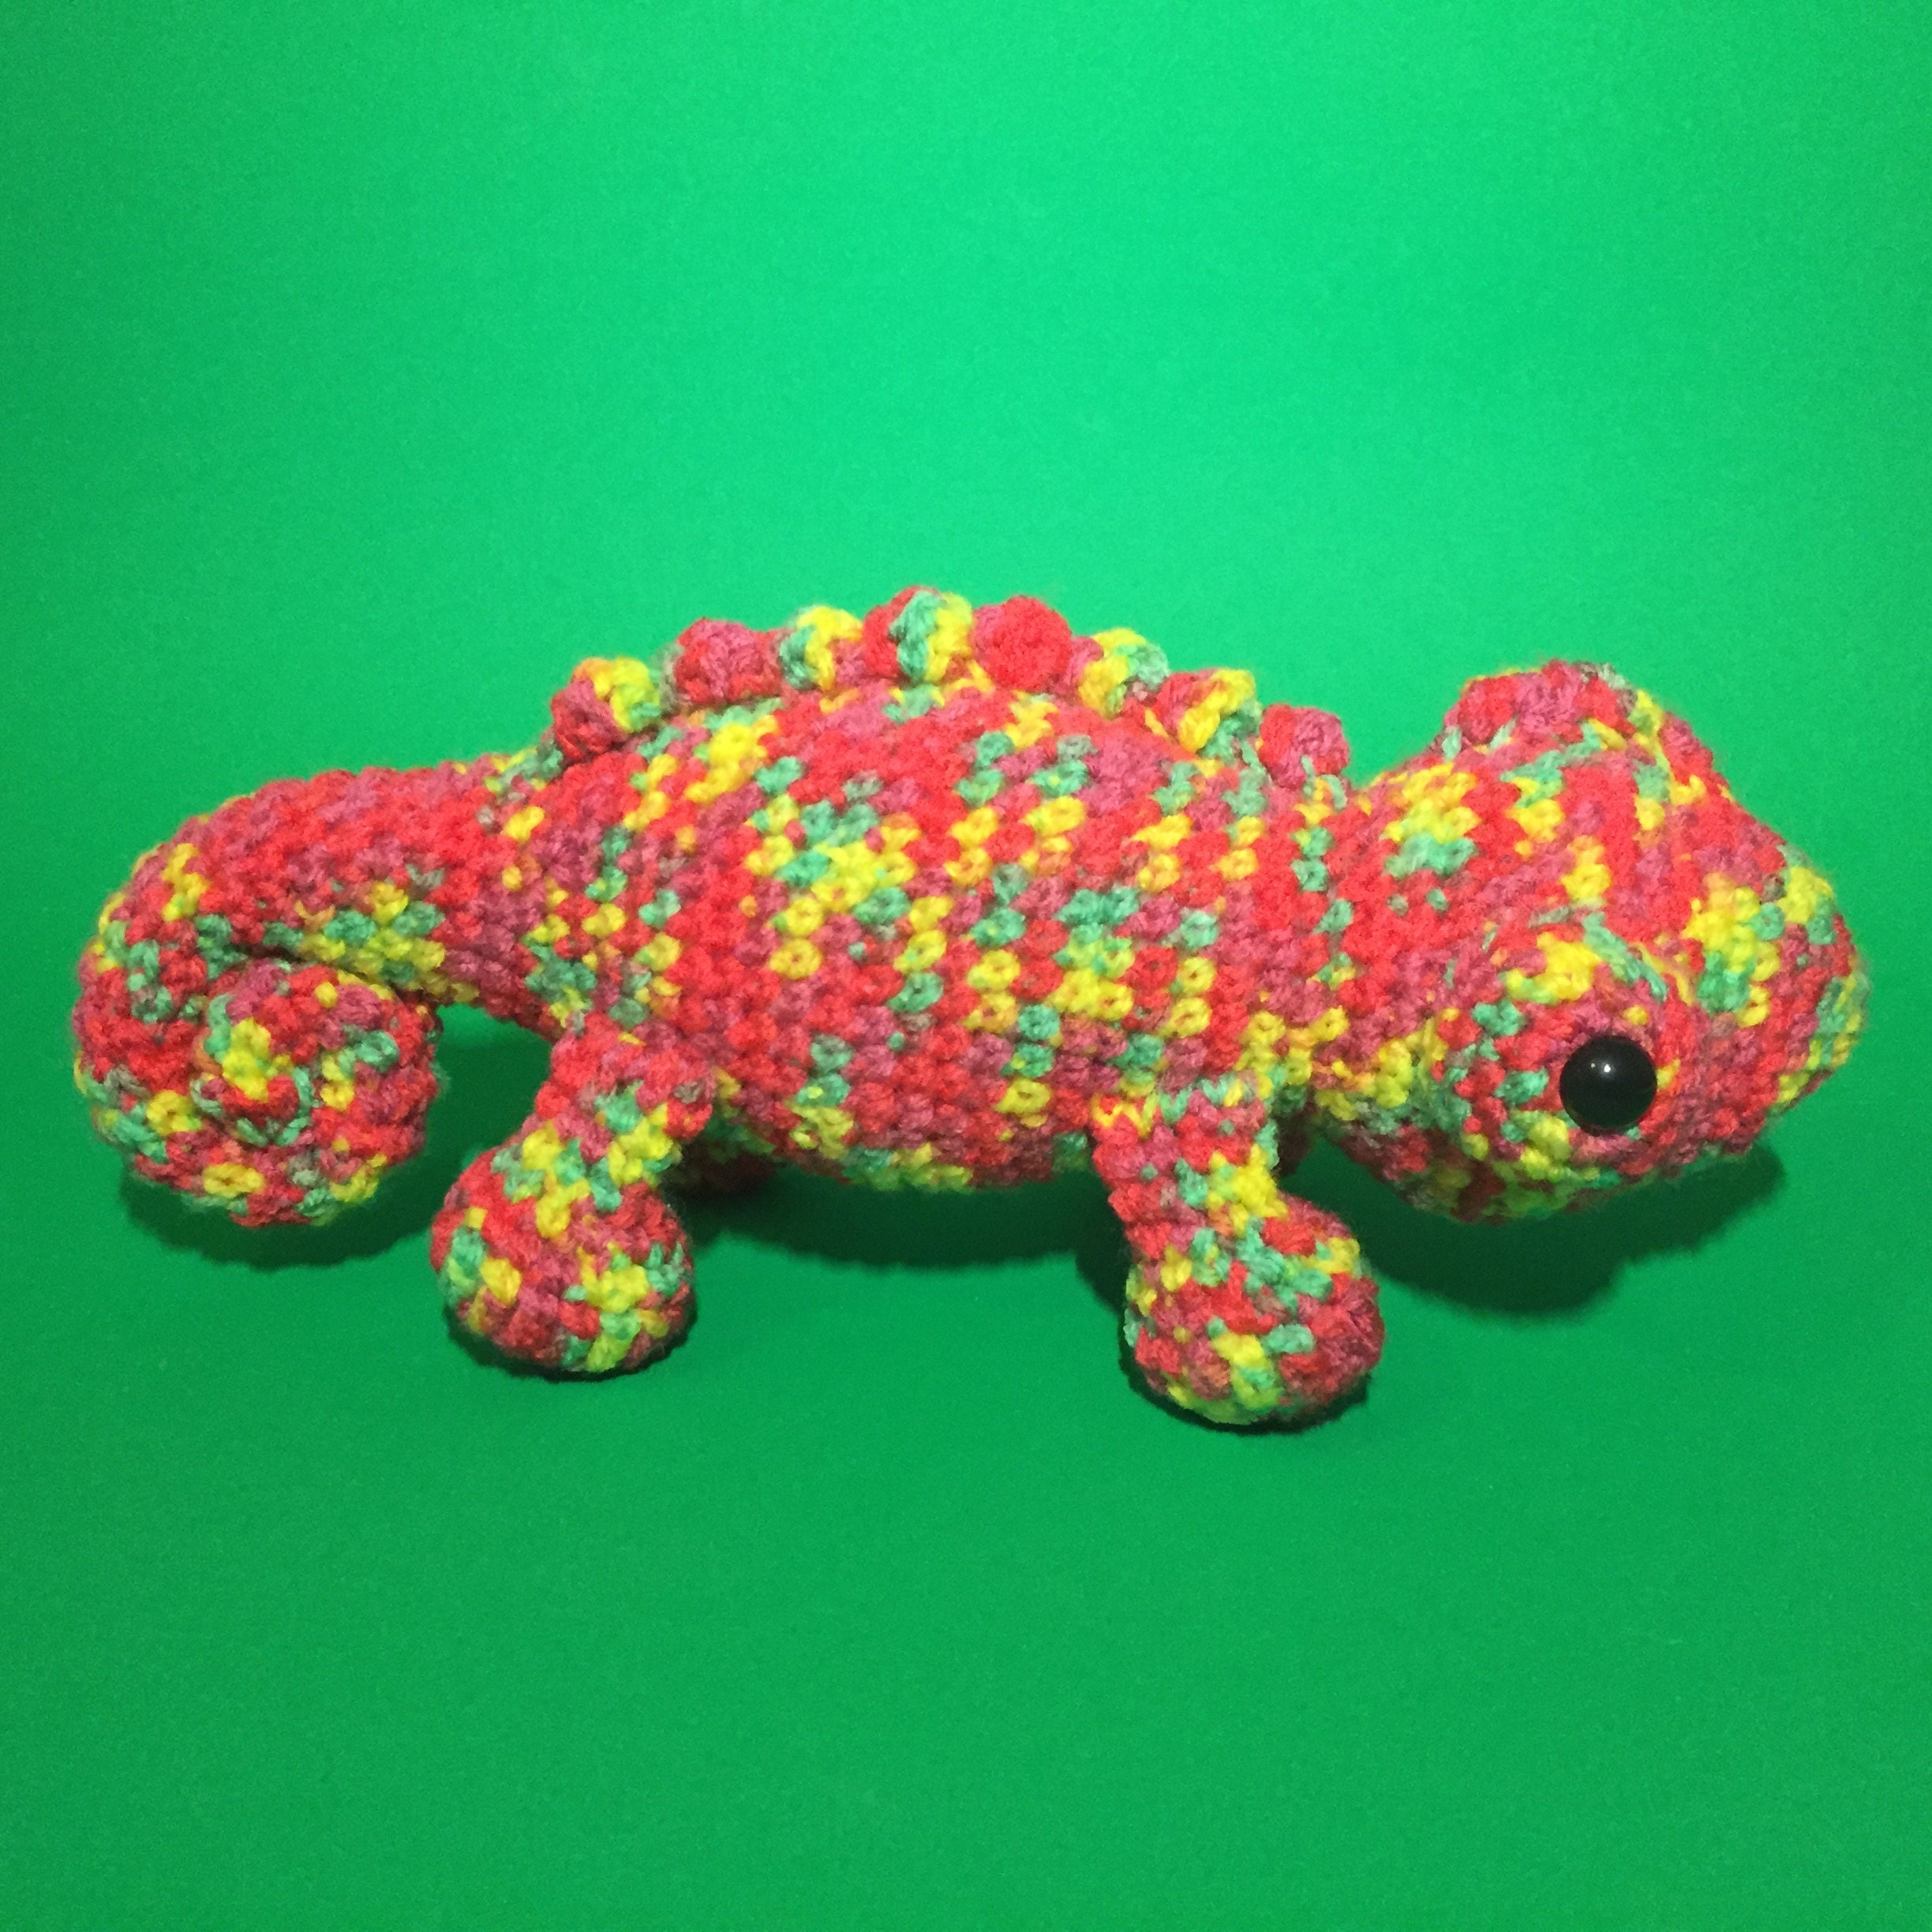 Pablo the Chameleon Crochet Pattern//PDF